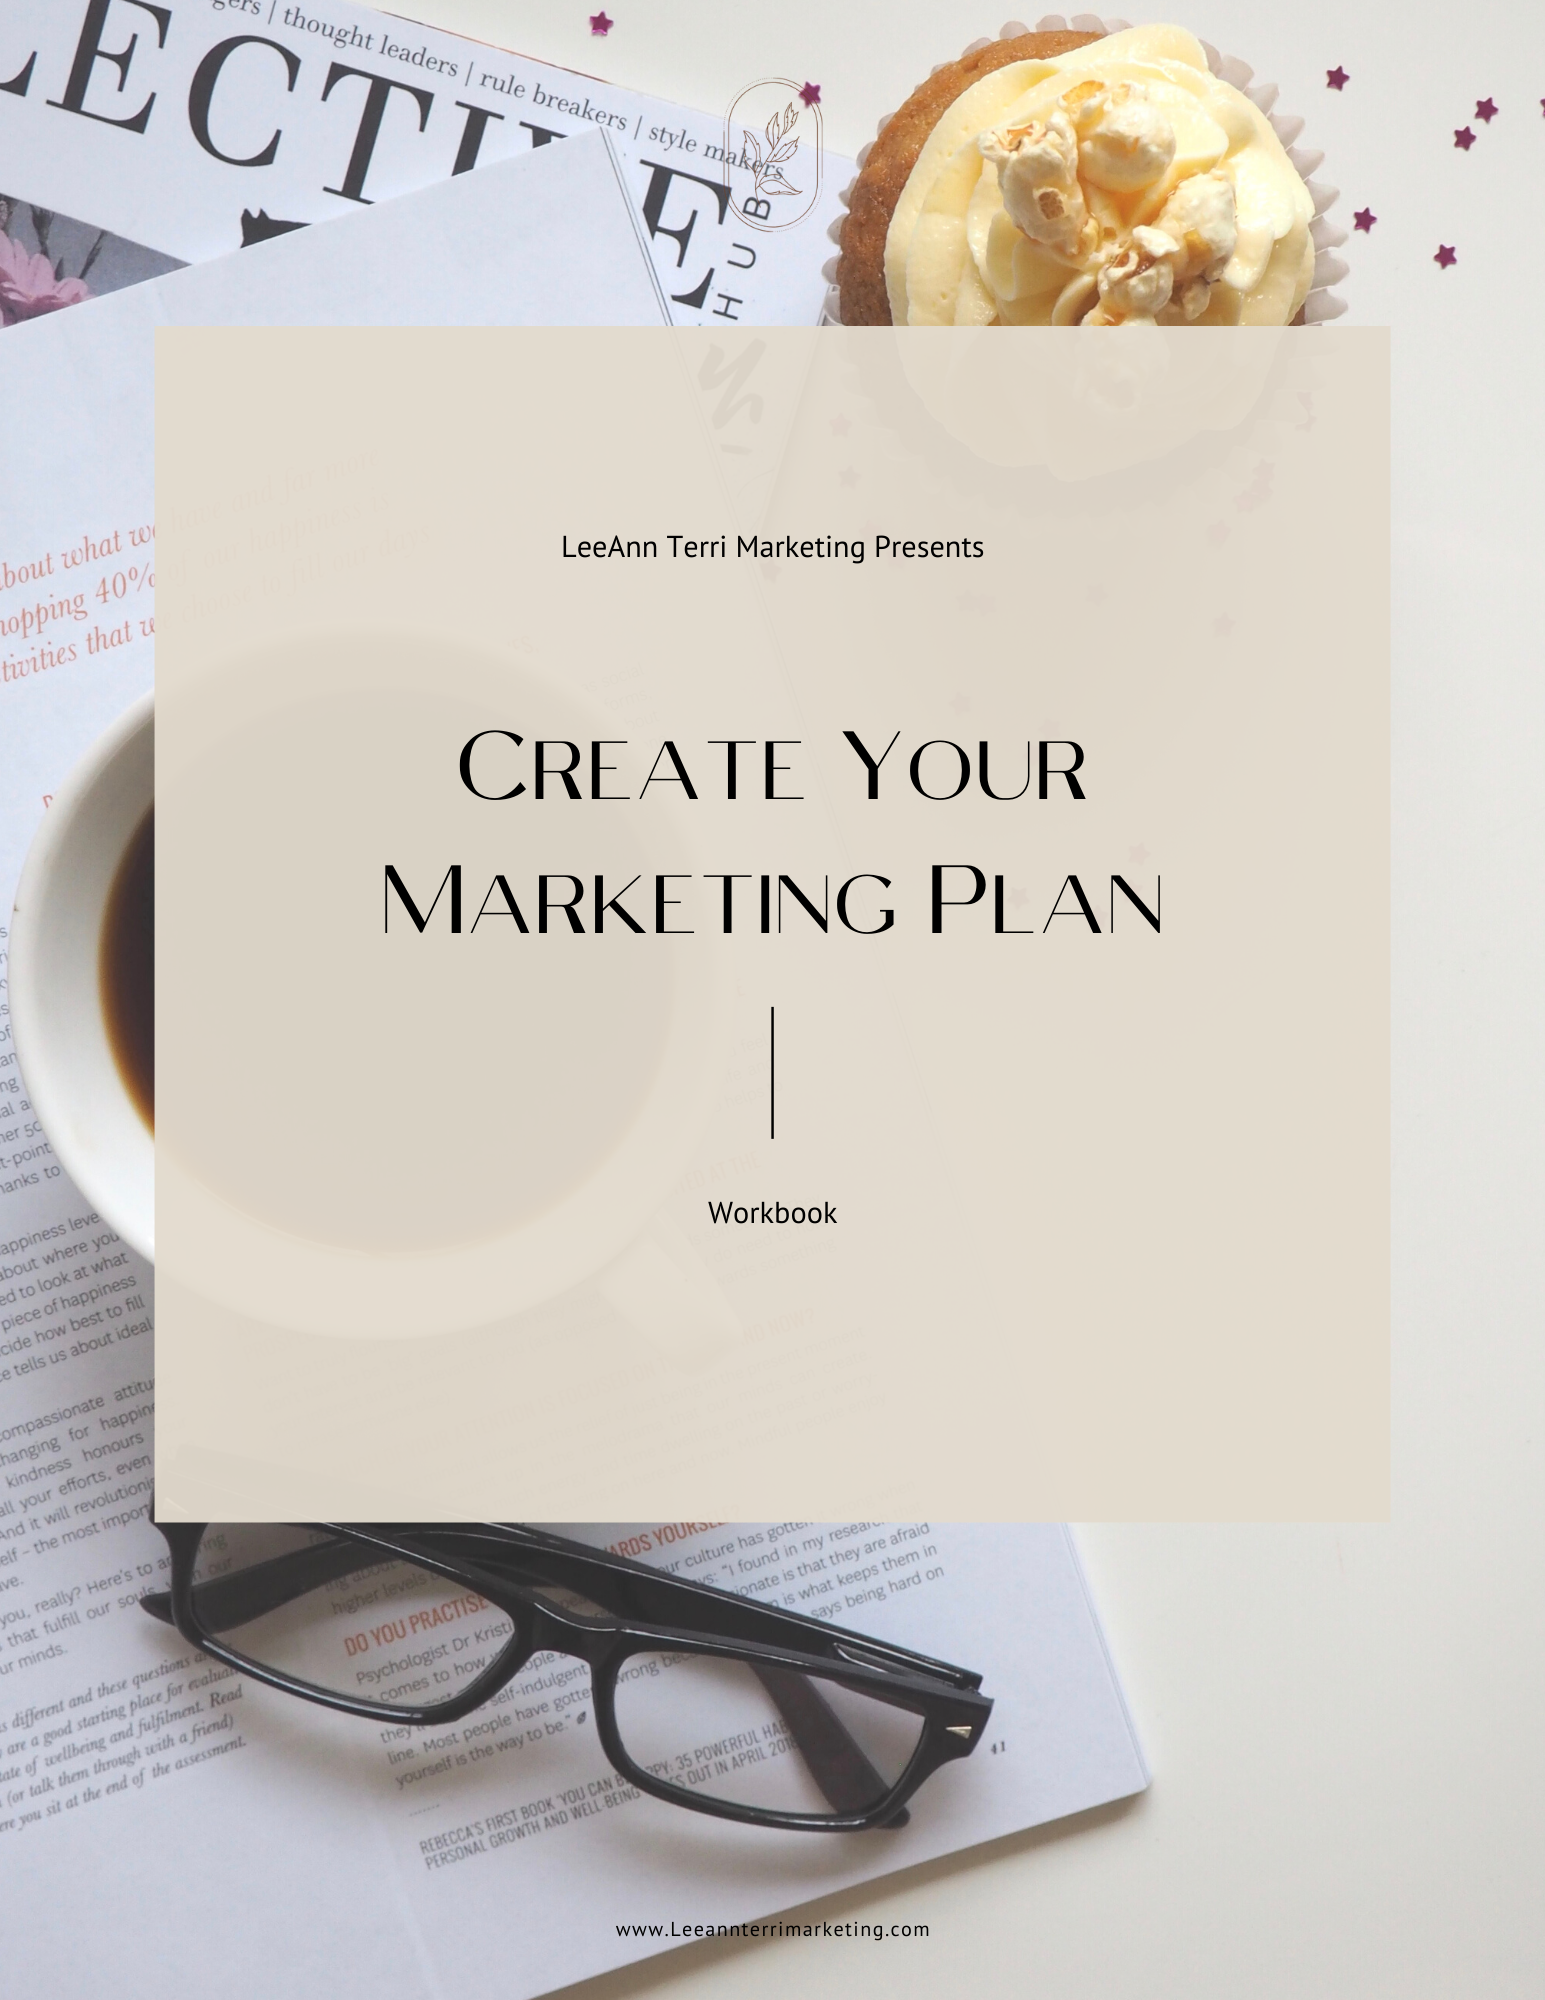 LeeAnn Terri Marketing Marketing Plan